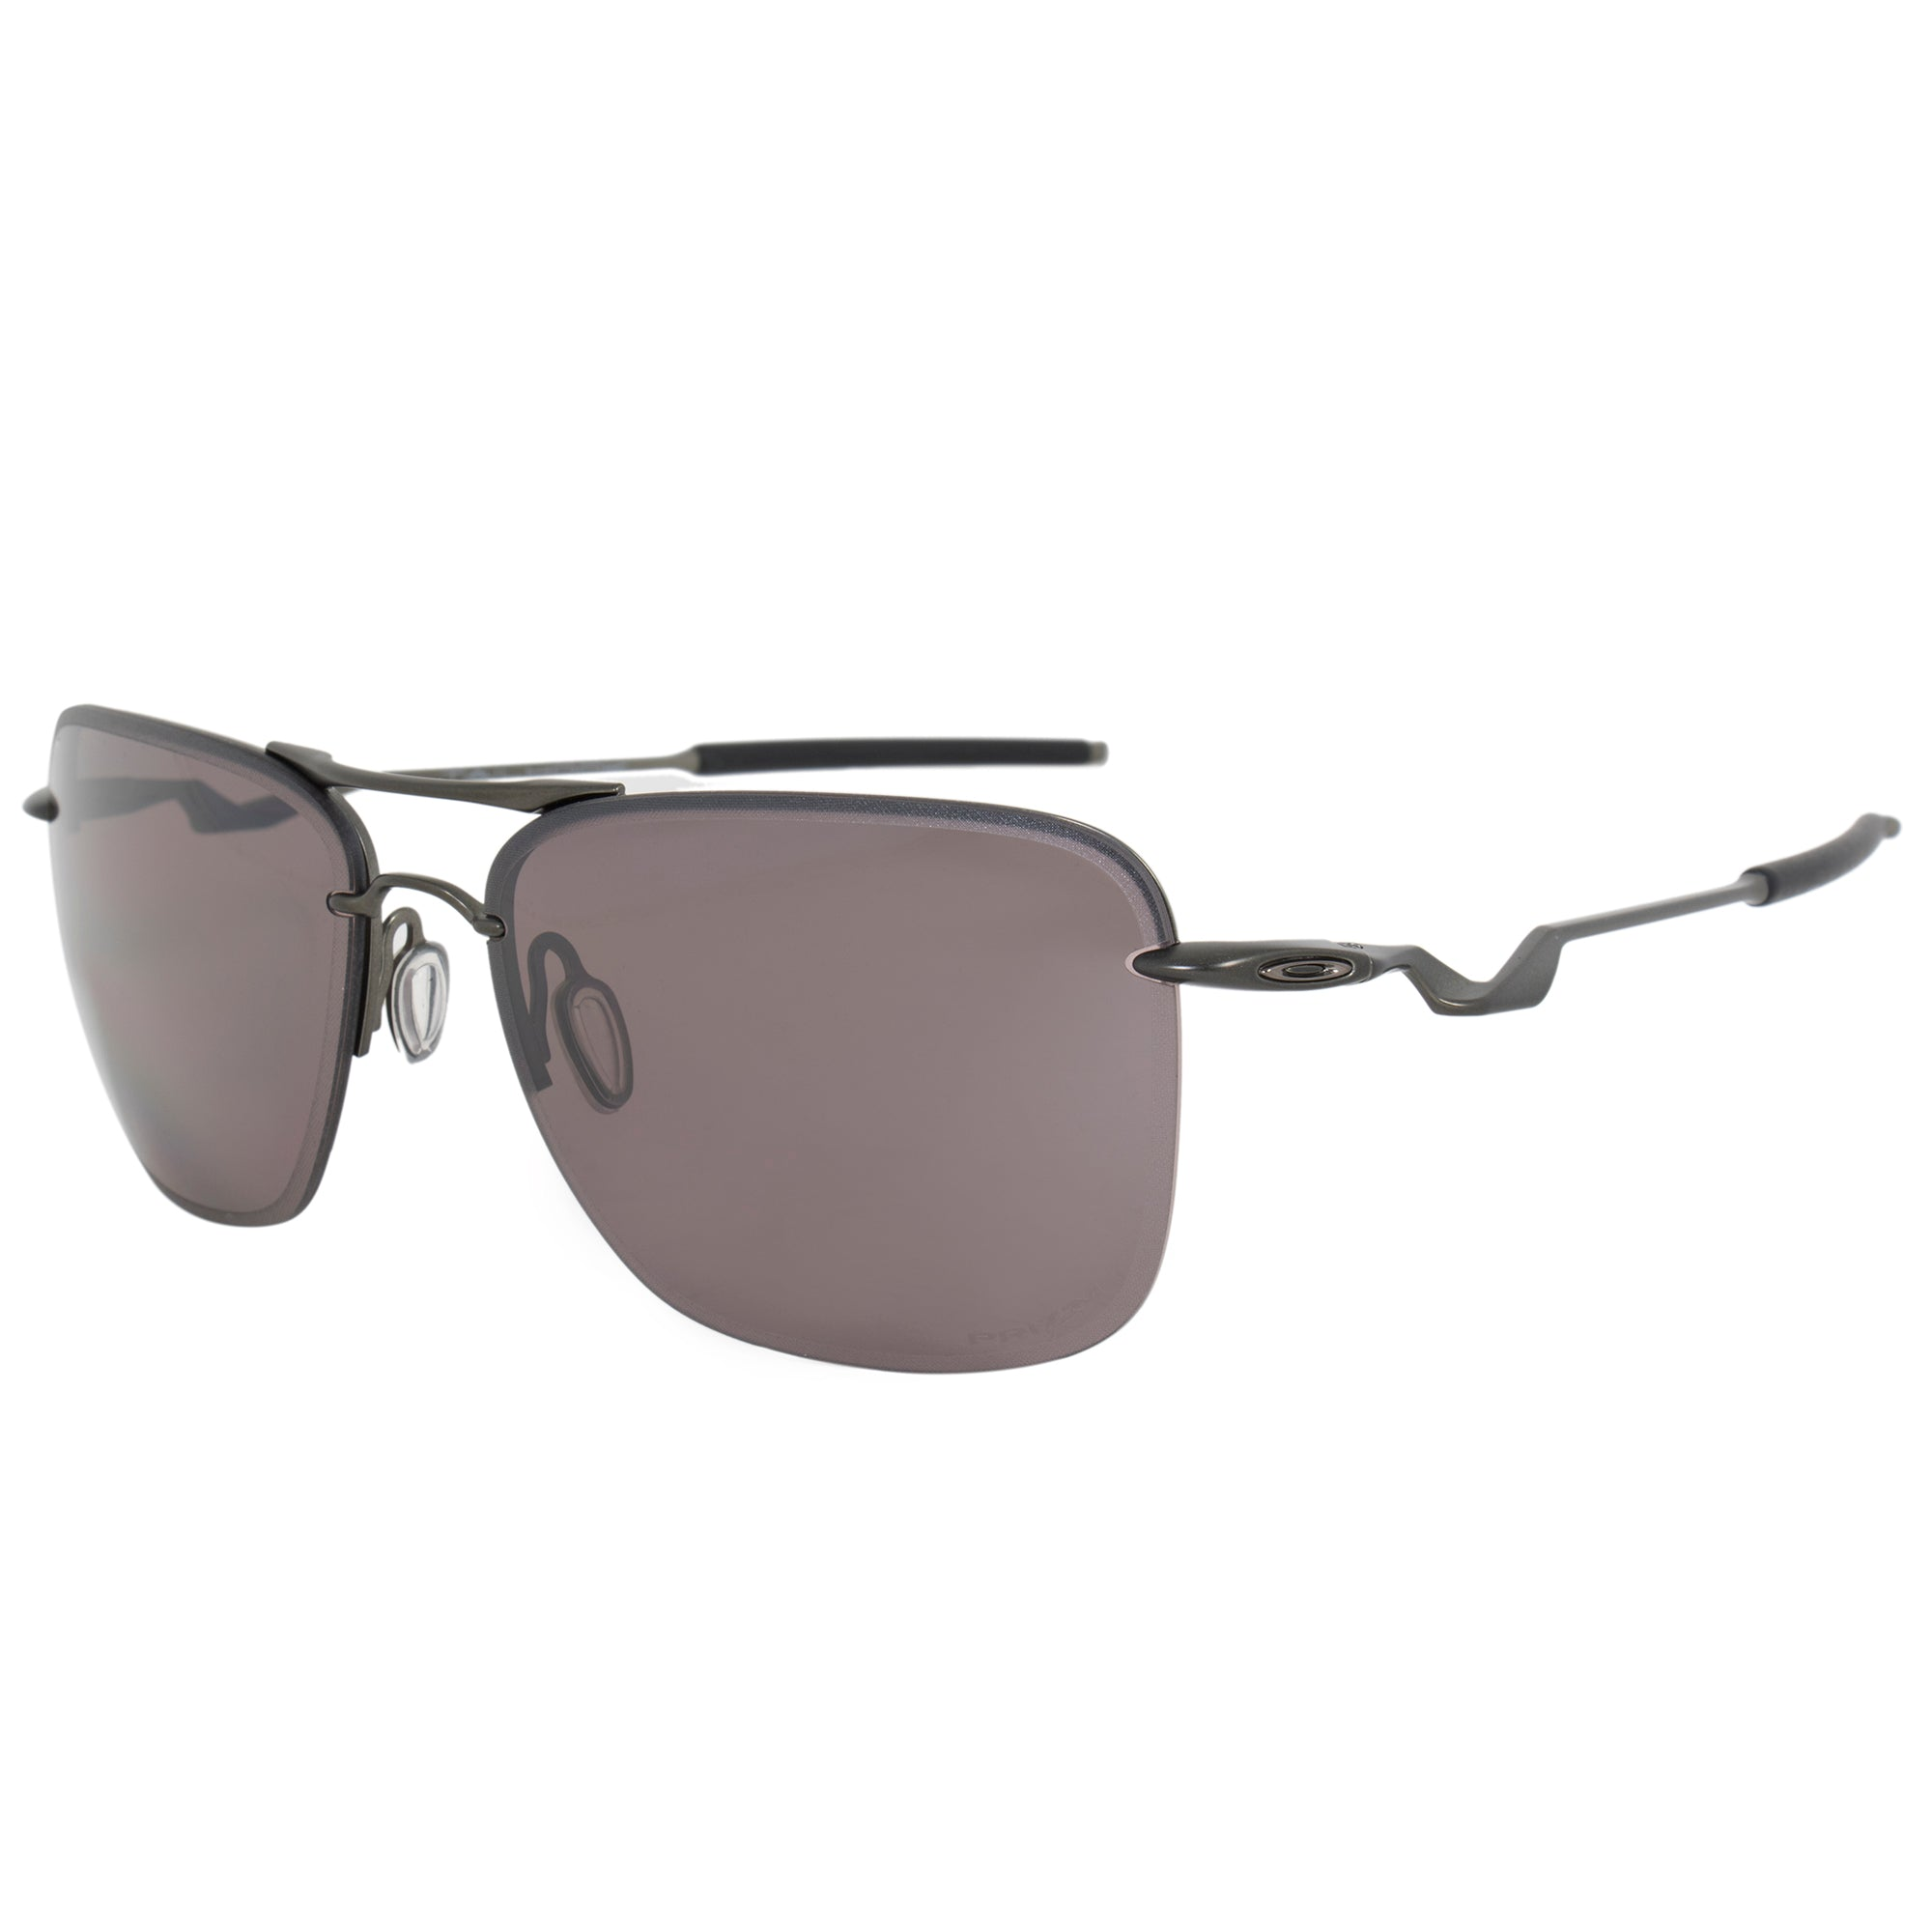 Oakley Tailhook Square Sunglasses 0OO4087 408705 60 POL | Carbon Frames | Polarized Prizm Daily Lenses